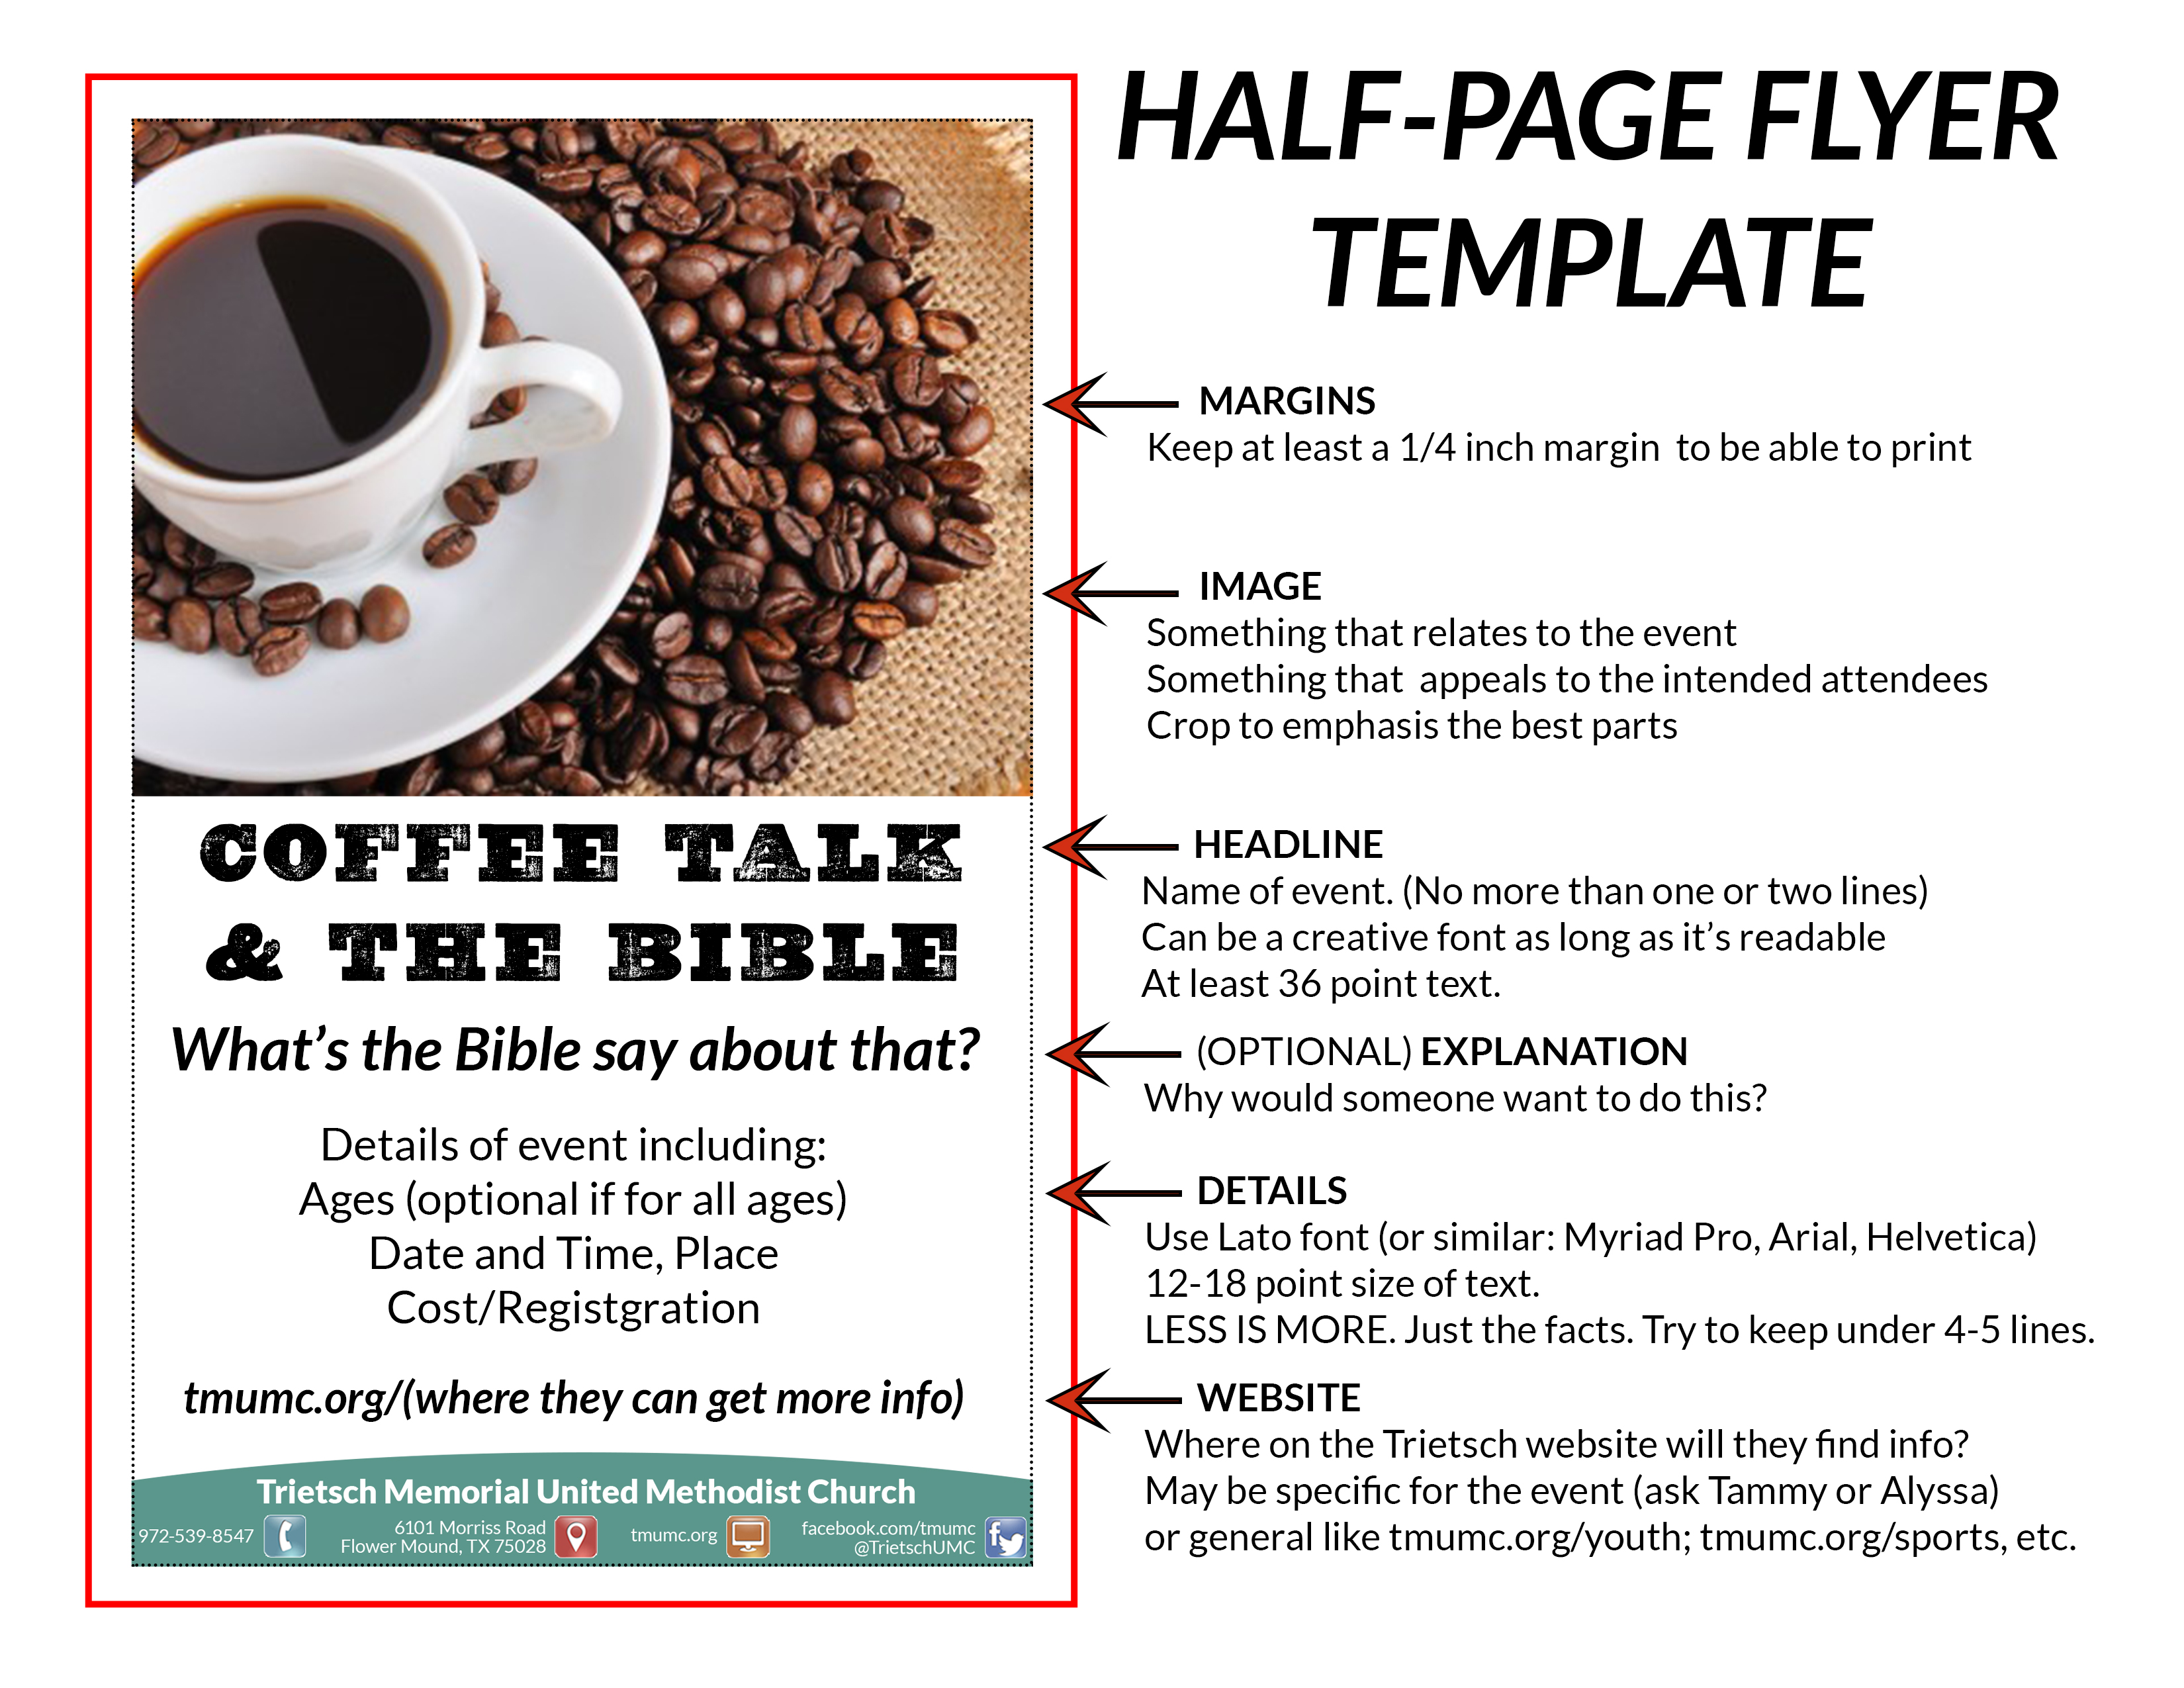 Cute half page ad template images example resume ideas alingaricom for How to make a half page flyer in word